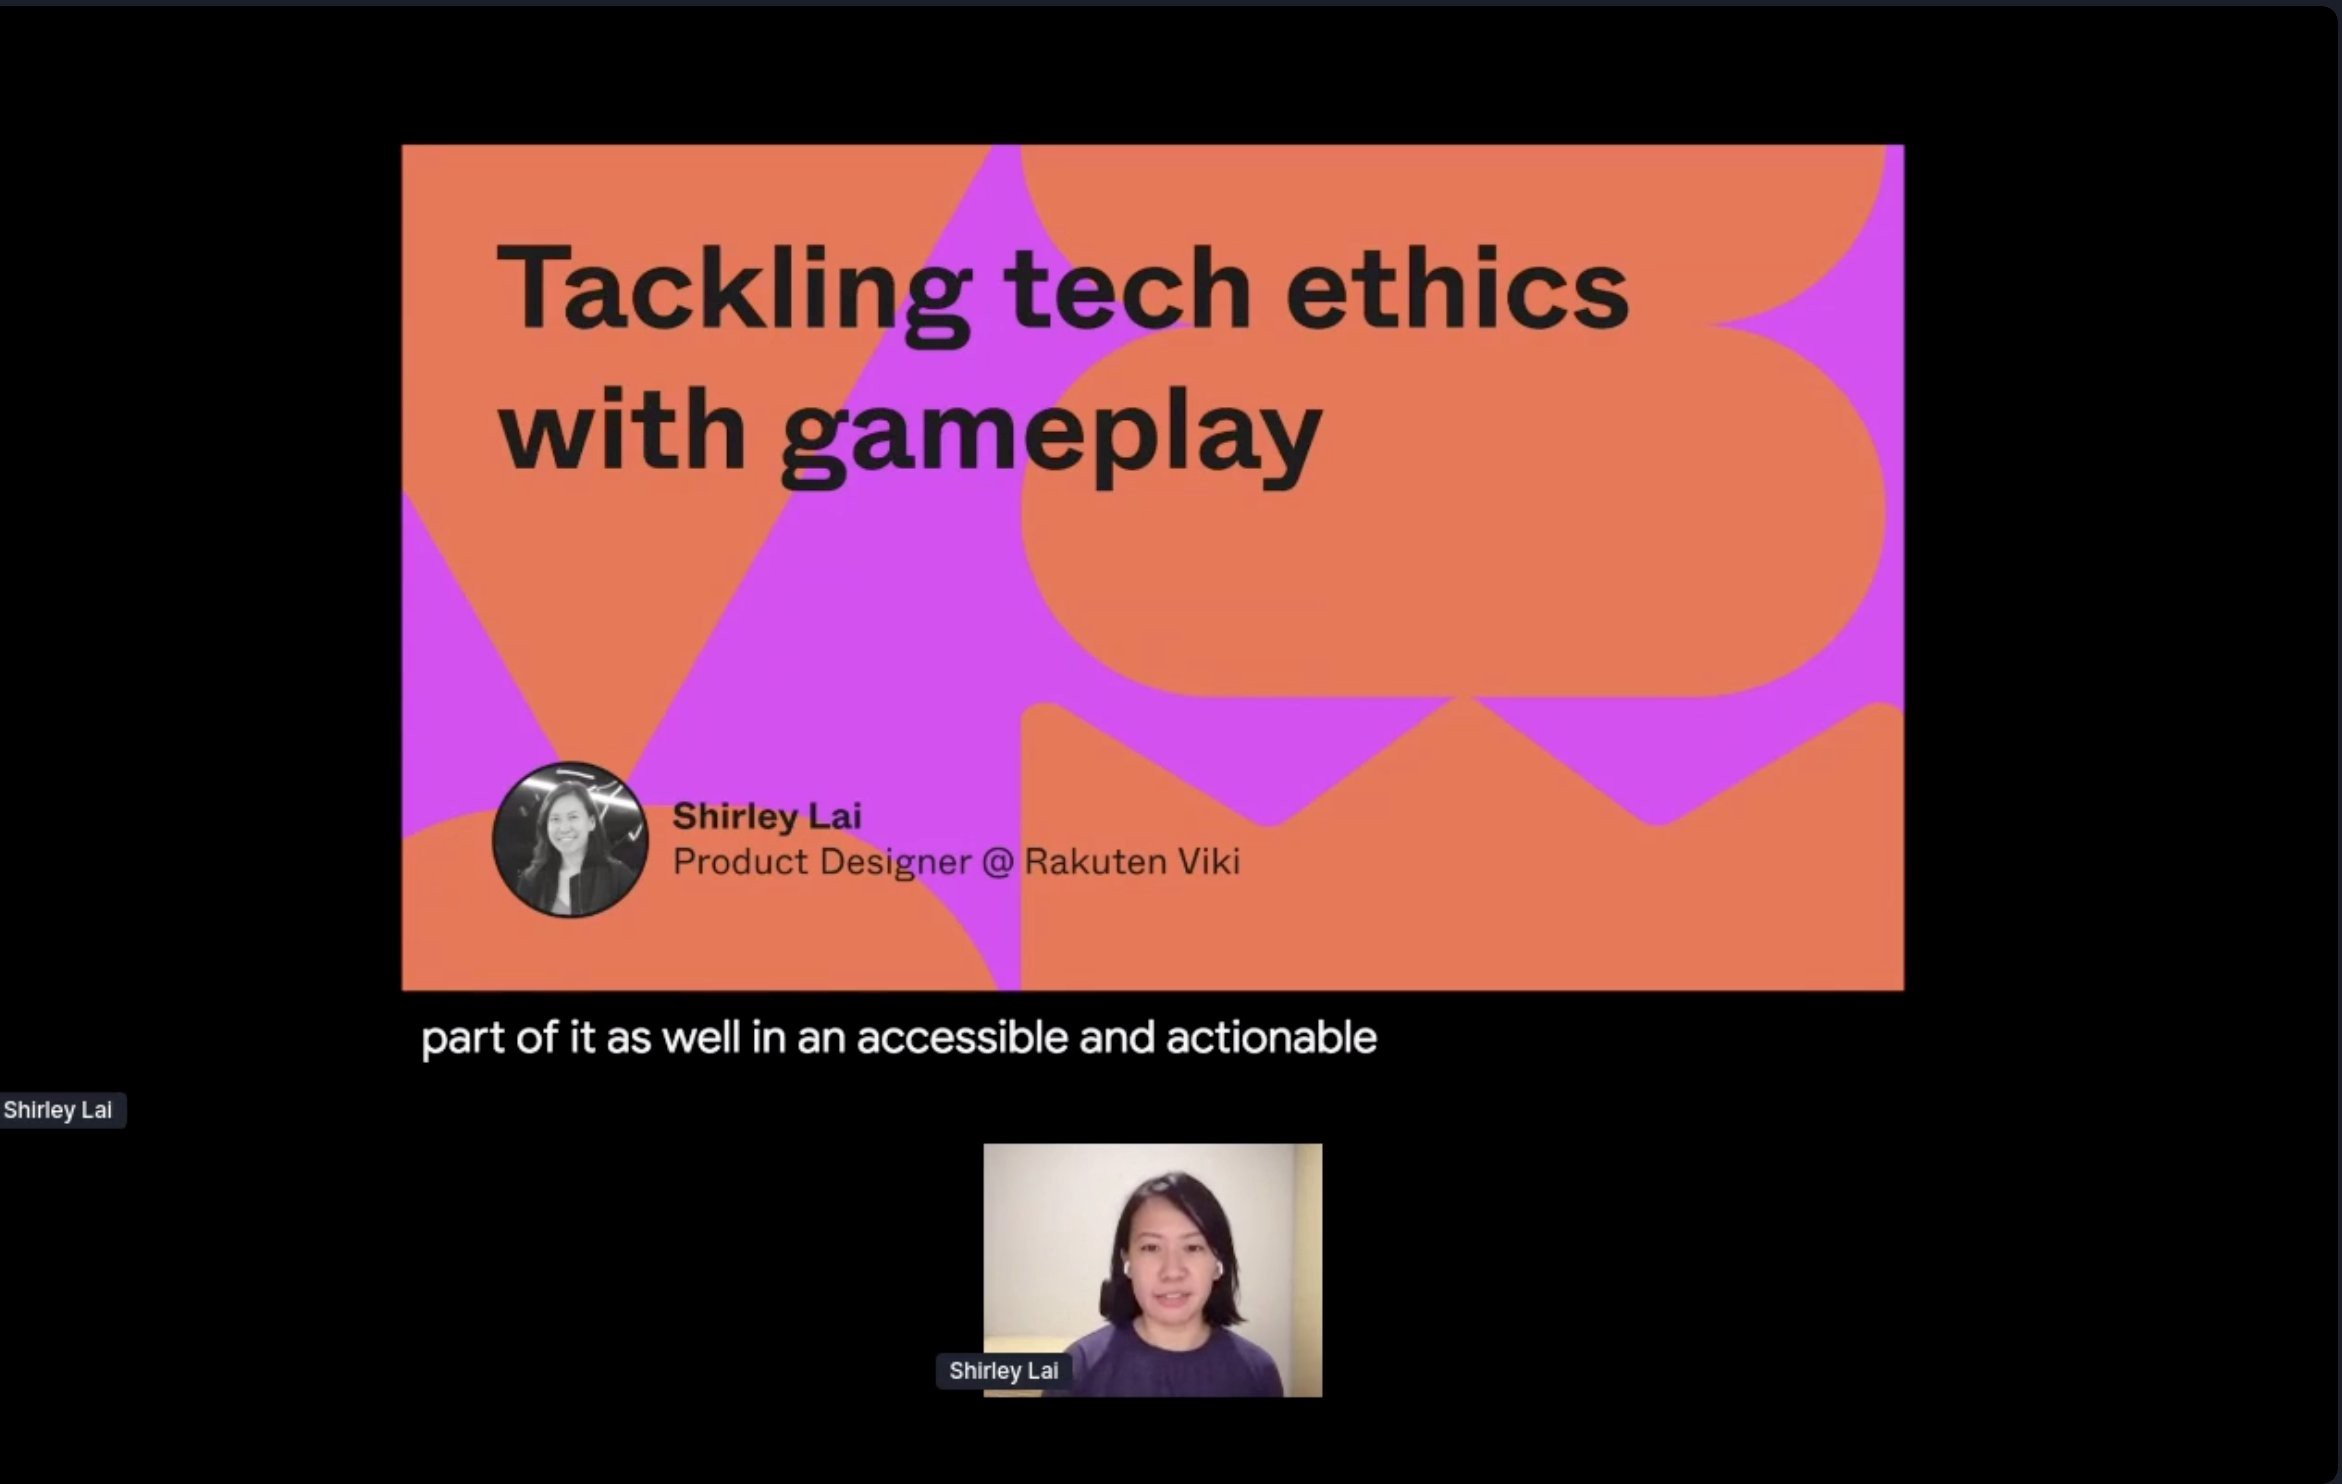 Screenshot of conference with title (Tackling tech ethics with gameplay) at the top and speaker image at the bottom